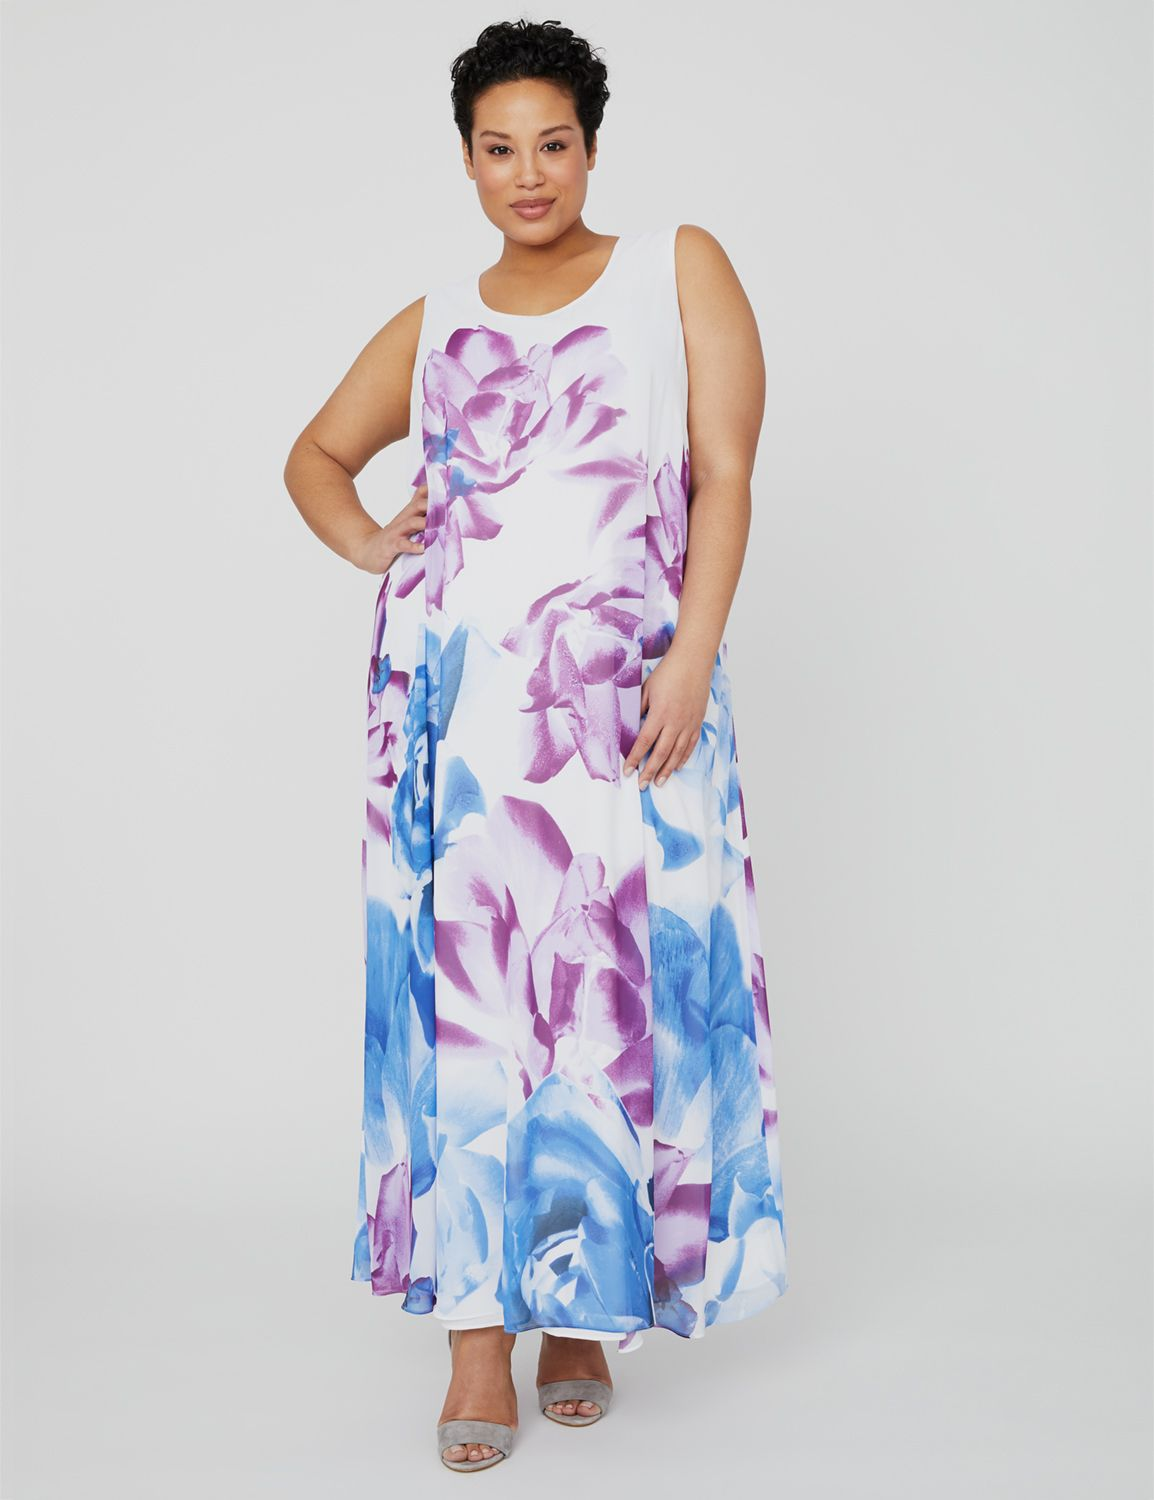 Black Label Rosebloom Maxi Dress 1088697 Printed Woven Sleeveless Ma MP-300100171